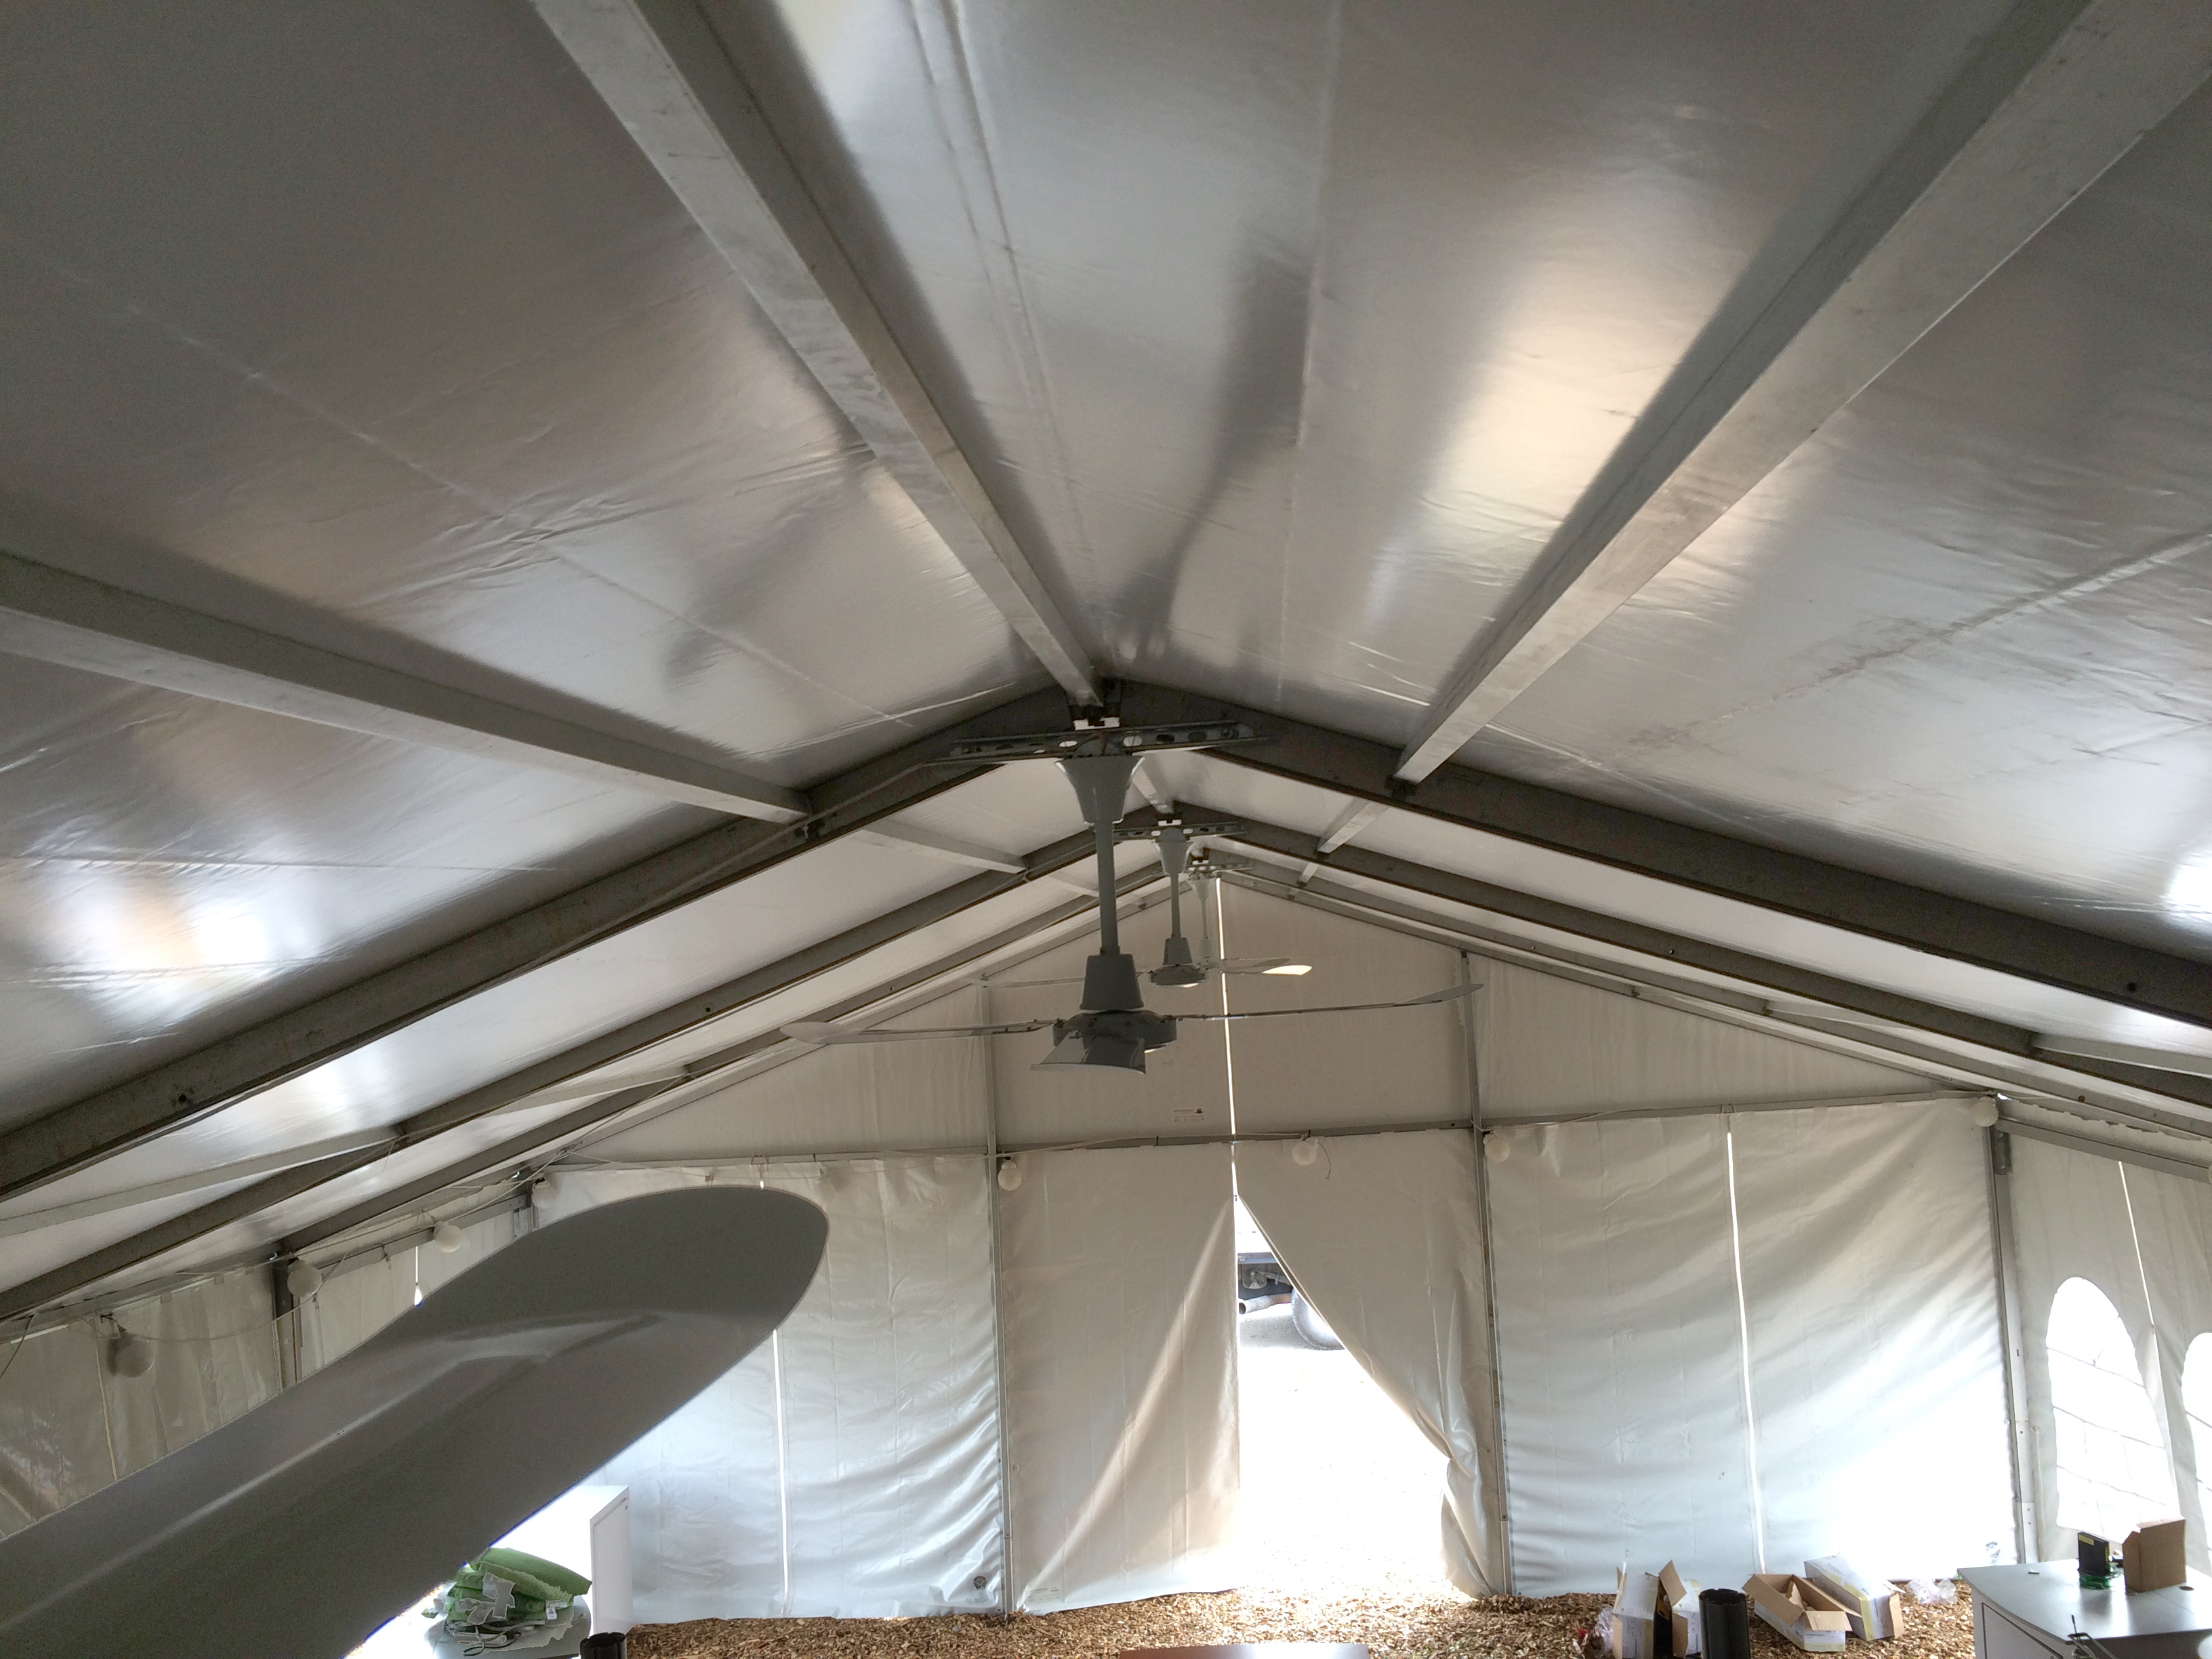 Ceiling fan under tentevent structure rental peak of losberger made clearspan tent with ceiling fans mozeypictures Image collections